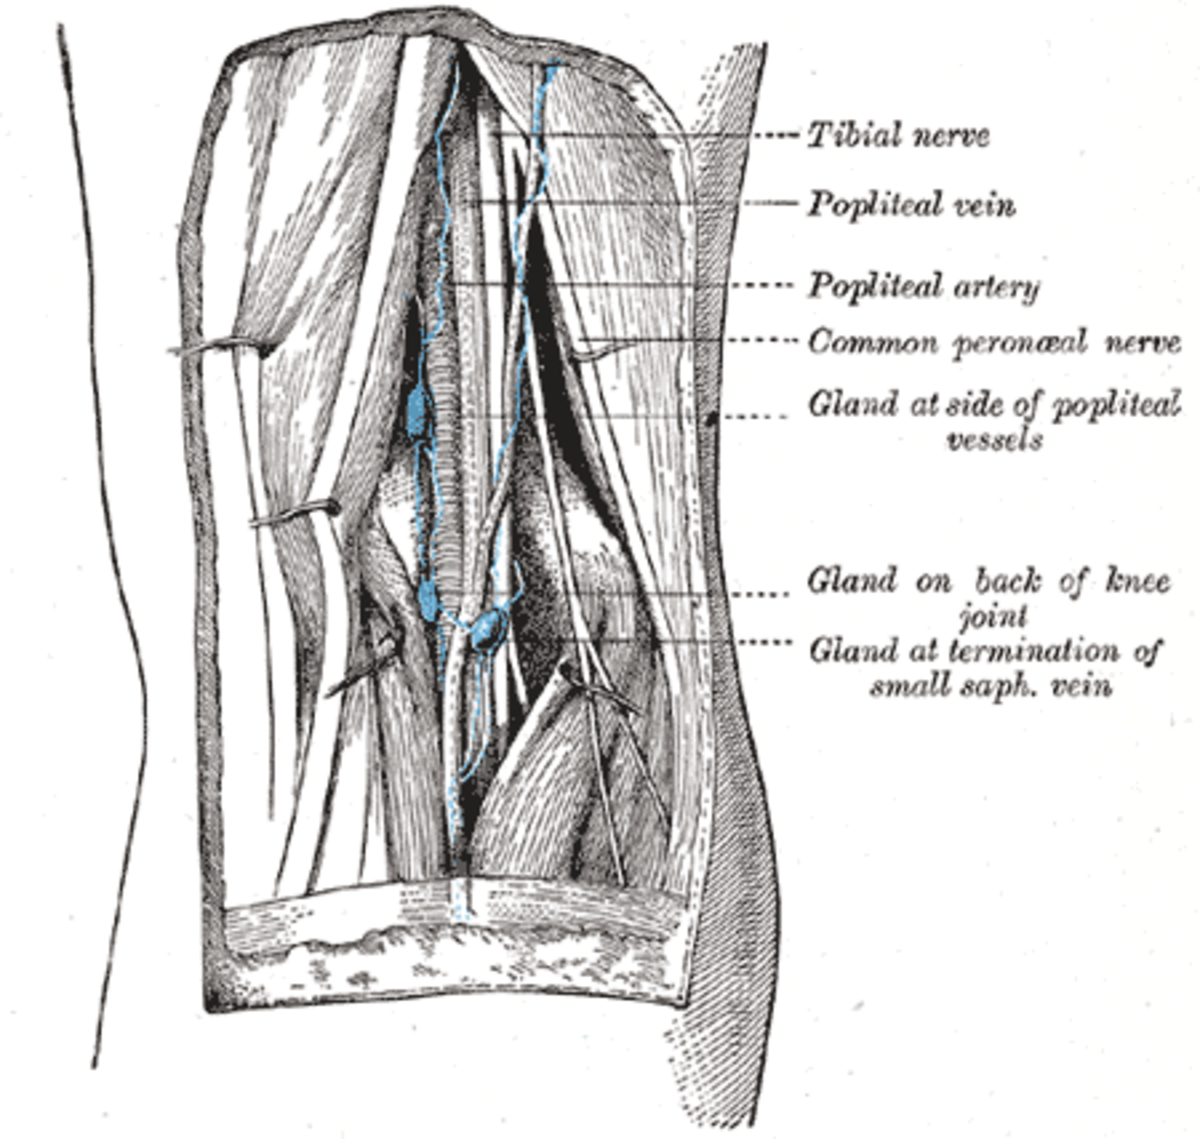 A cutaway showing the affected nerve